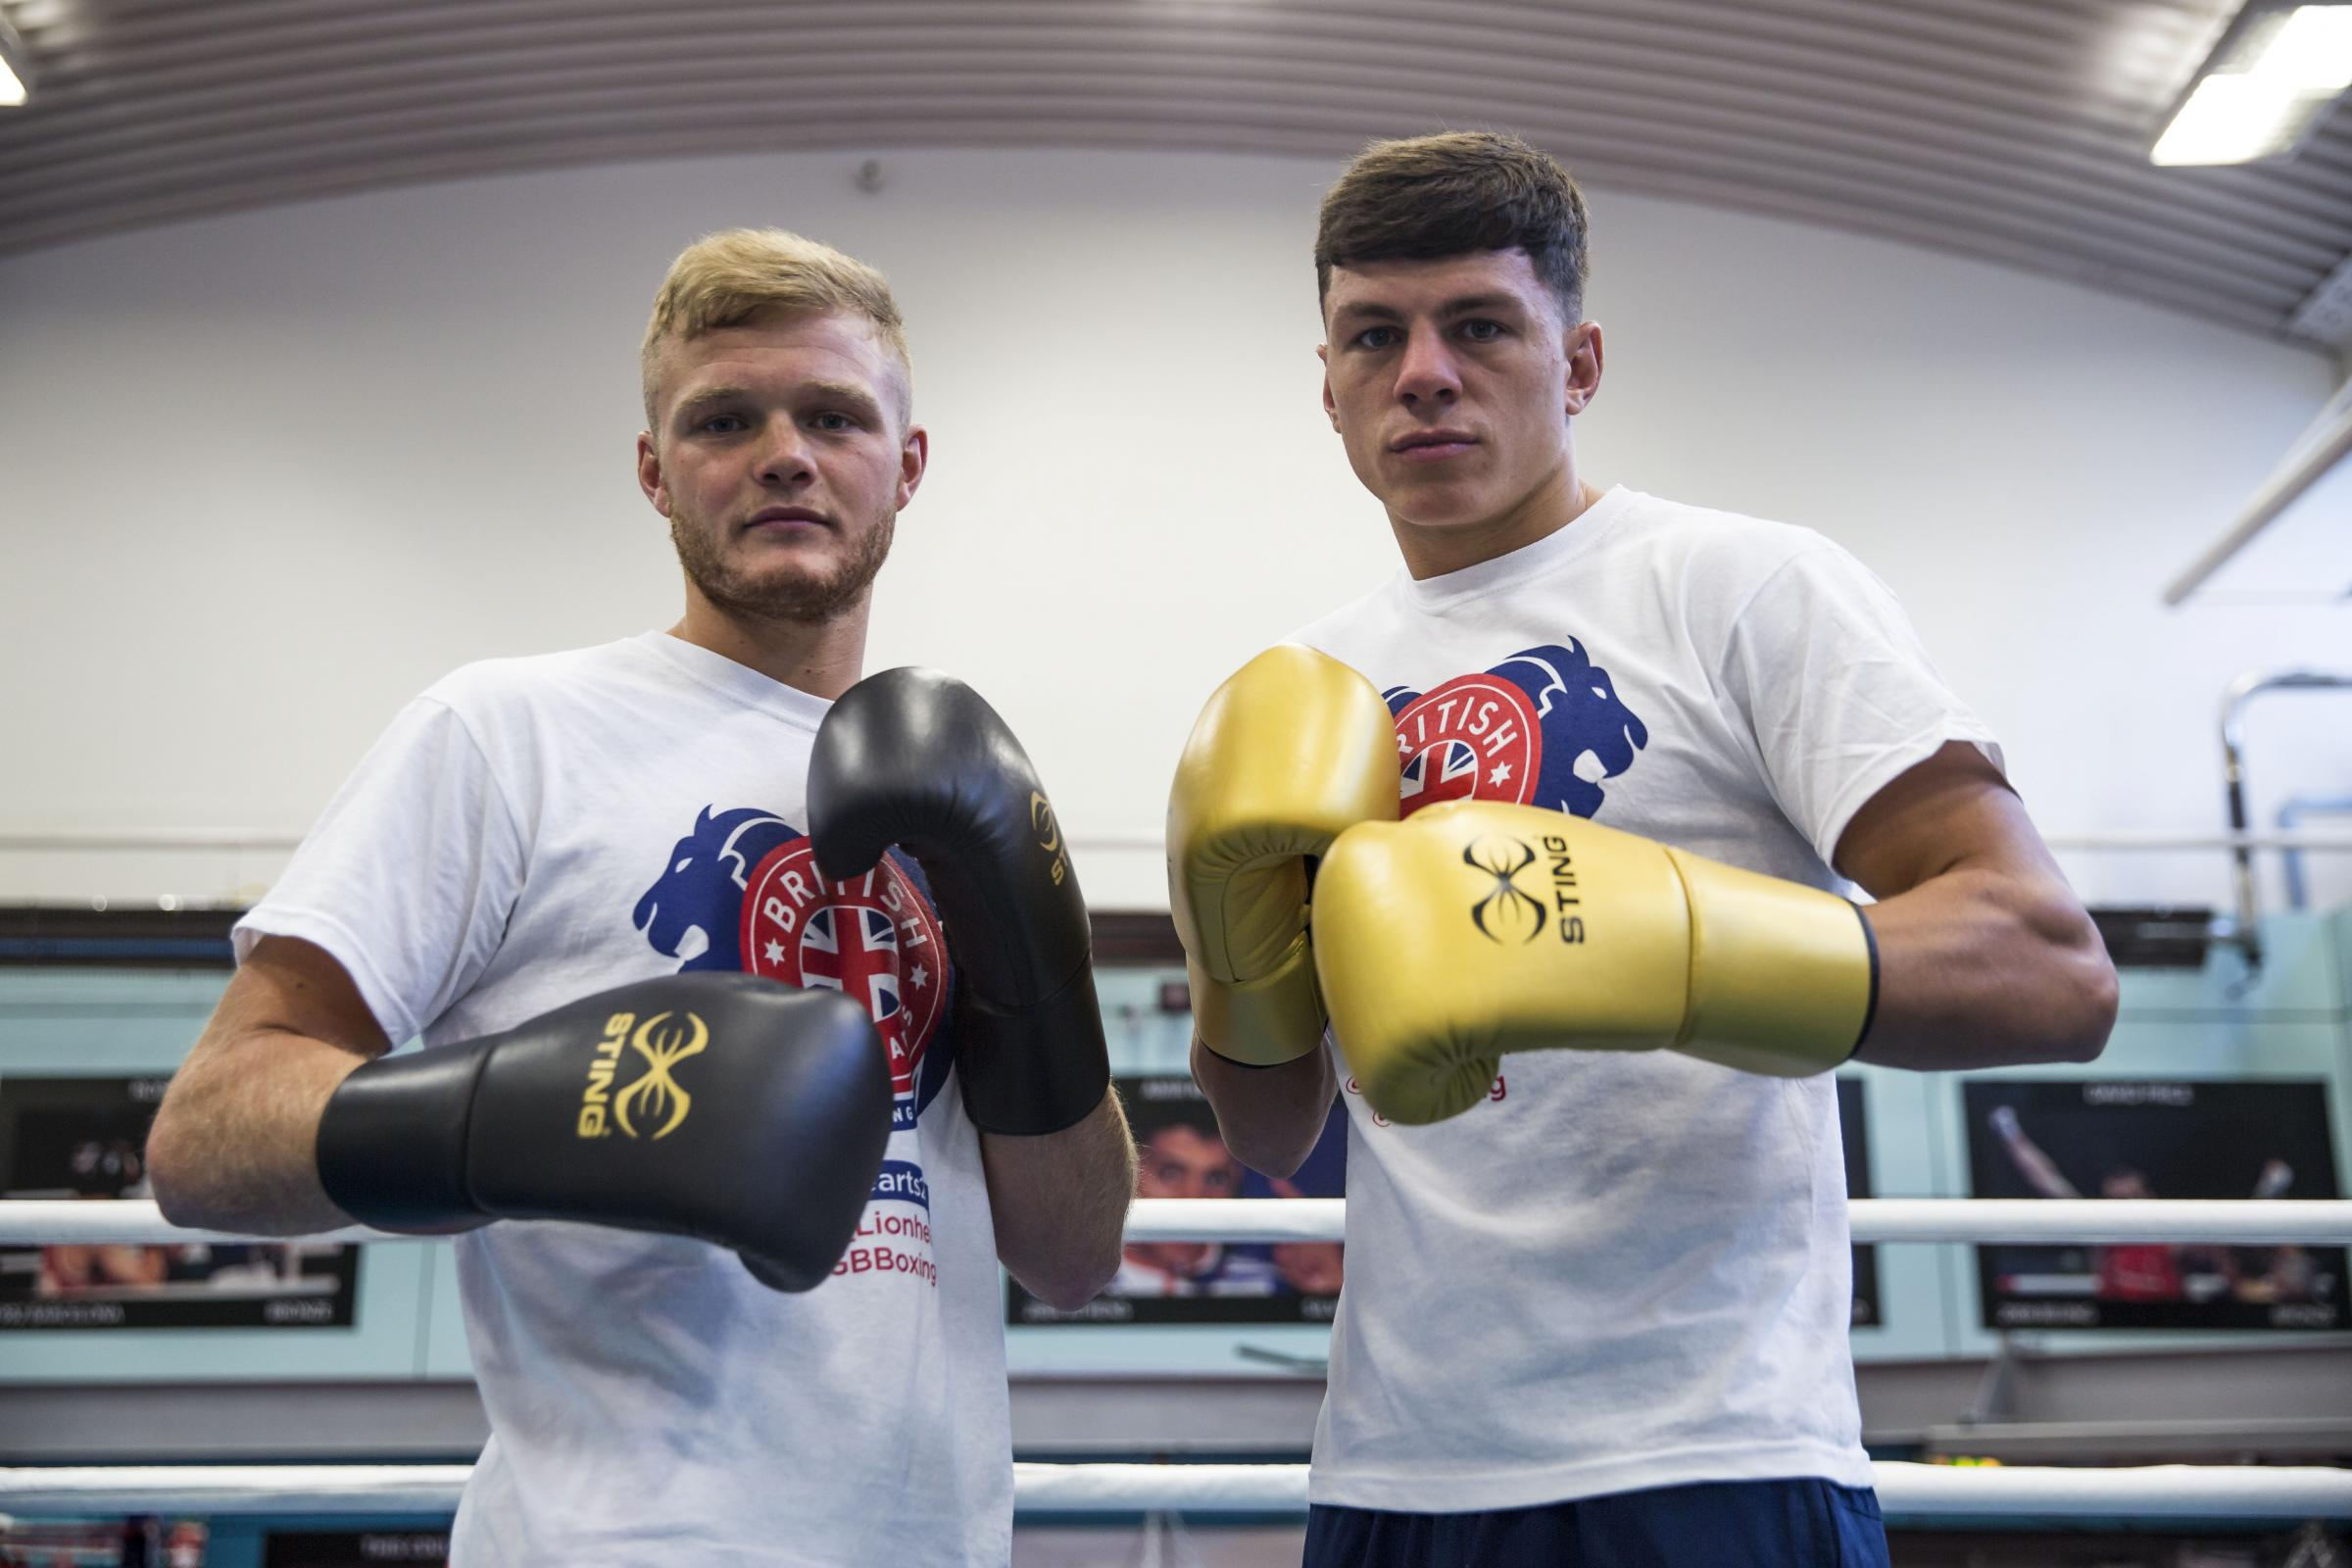 GLOVE AFFAIR: Calum French (left) and Pat McCormack (right) will be part of the British Lionhearts team that fights in Gateshead in February